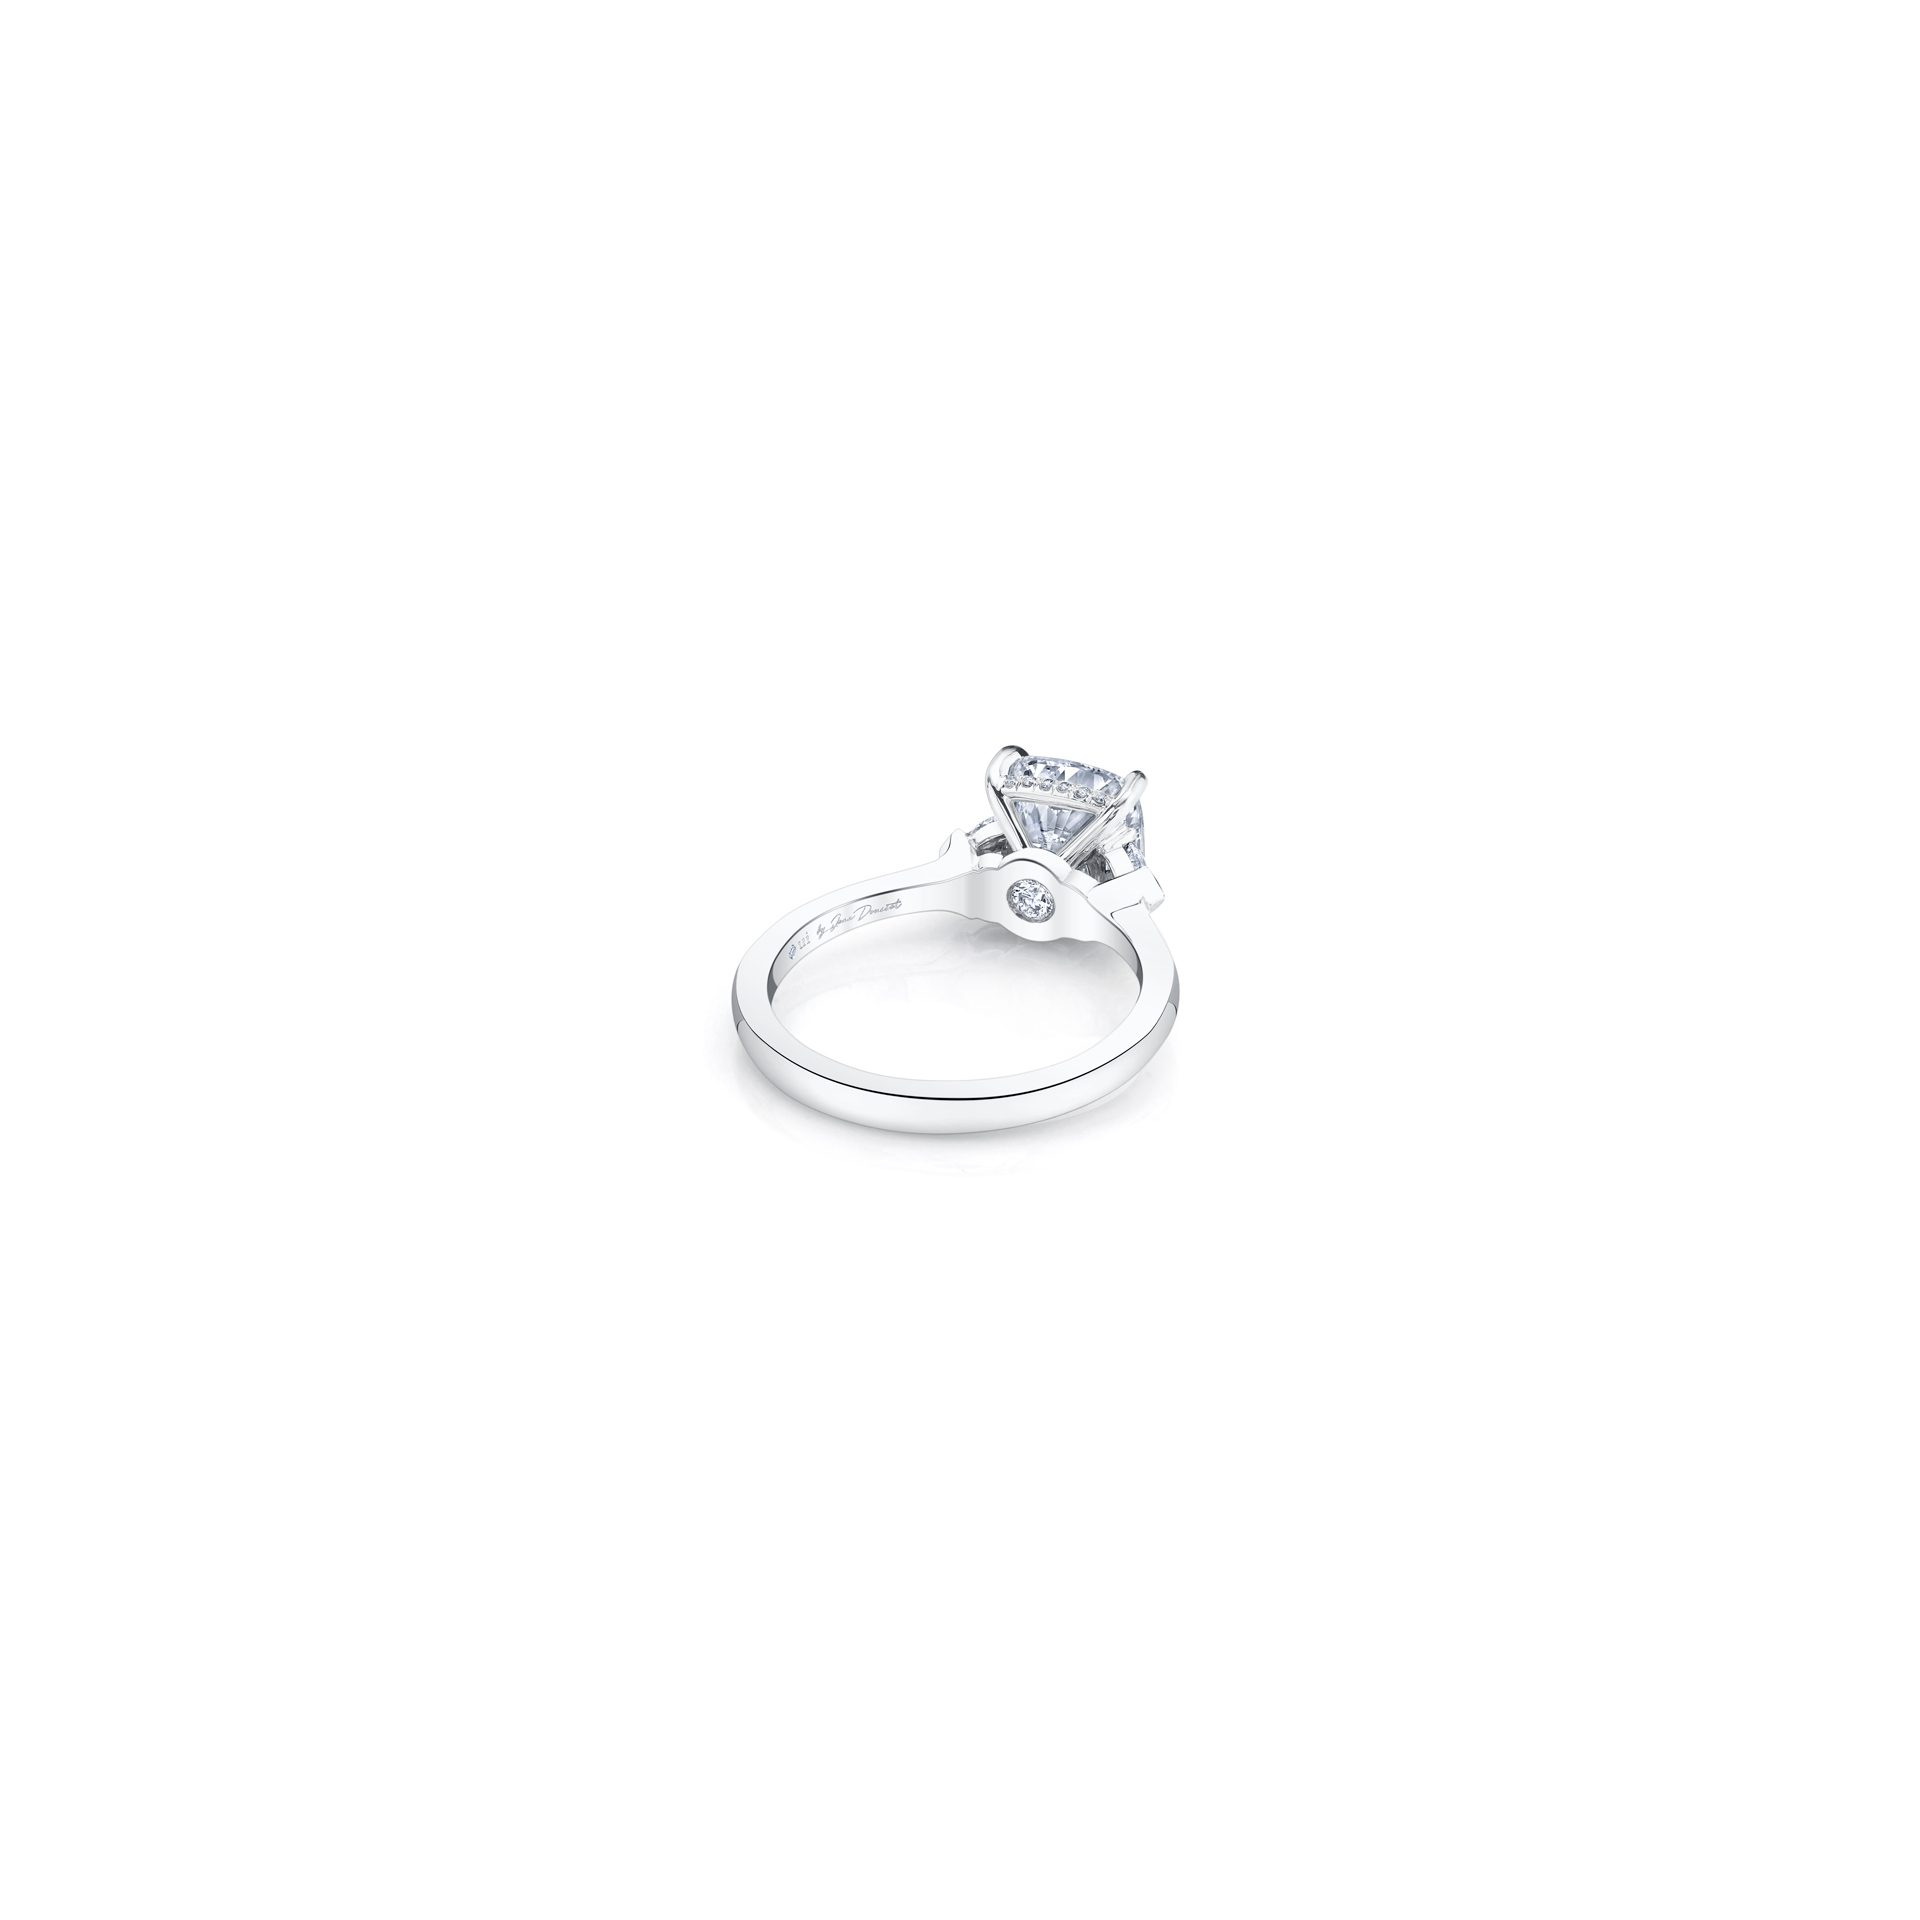 Claire Cushion Three Stone Engagement Ring with heart-shaped diamond side stones in 18k White Gold Back View by Oui by Jean Dousset